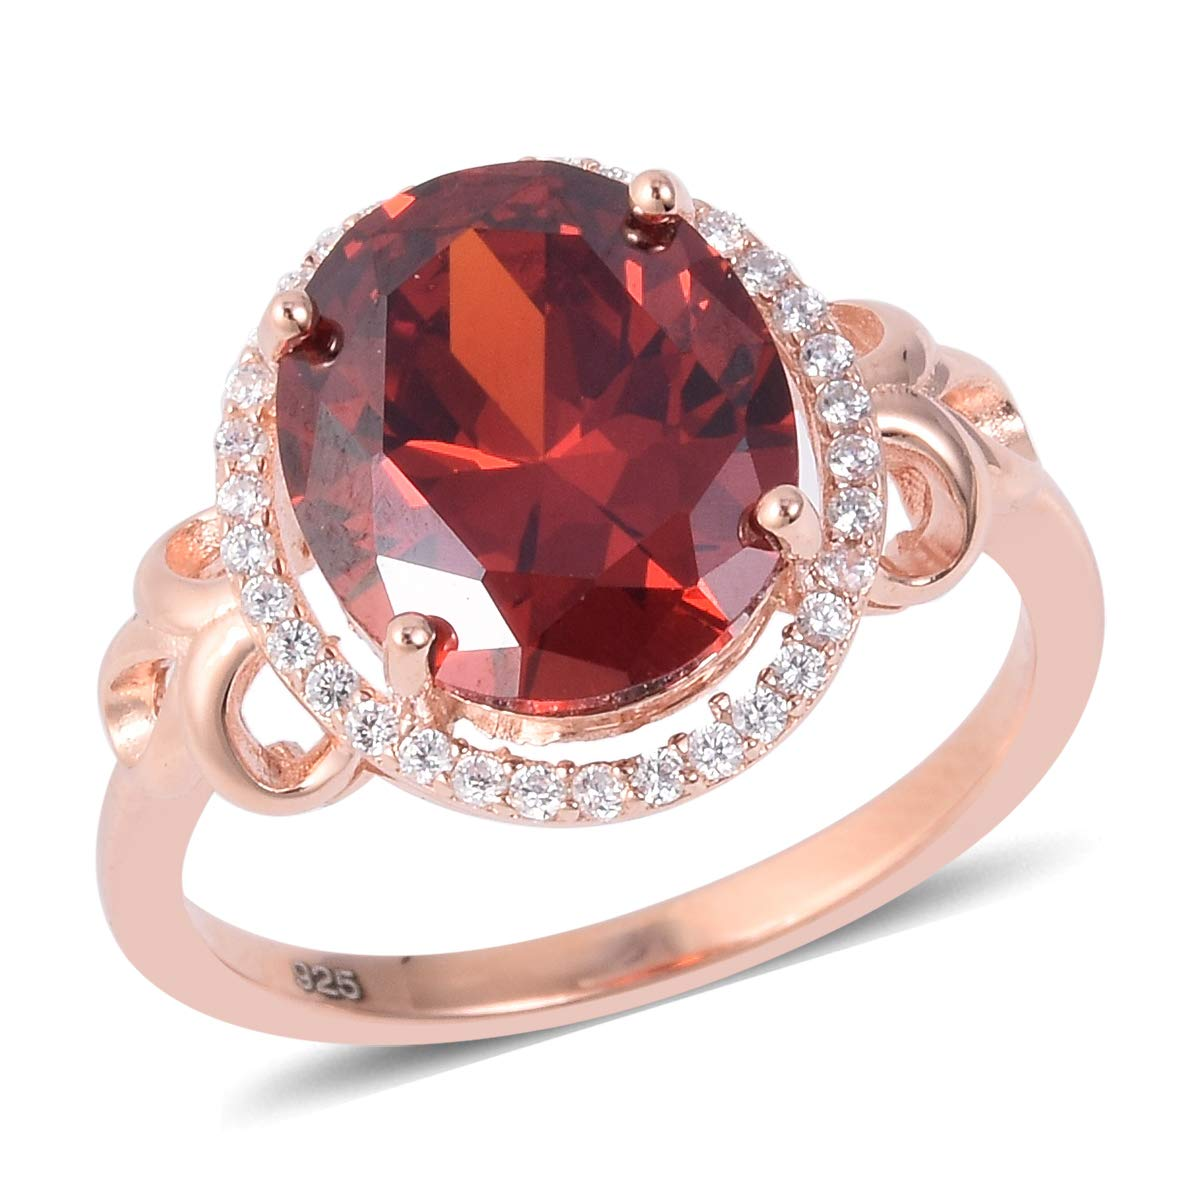 Rose Gold Plated 925 Sterling Silver Halo Ring Red and White Cubic Zirconia CZ Jewelry for Women Ct 5.1